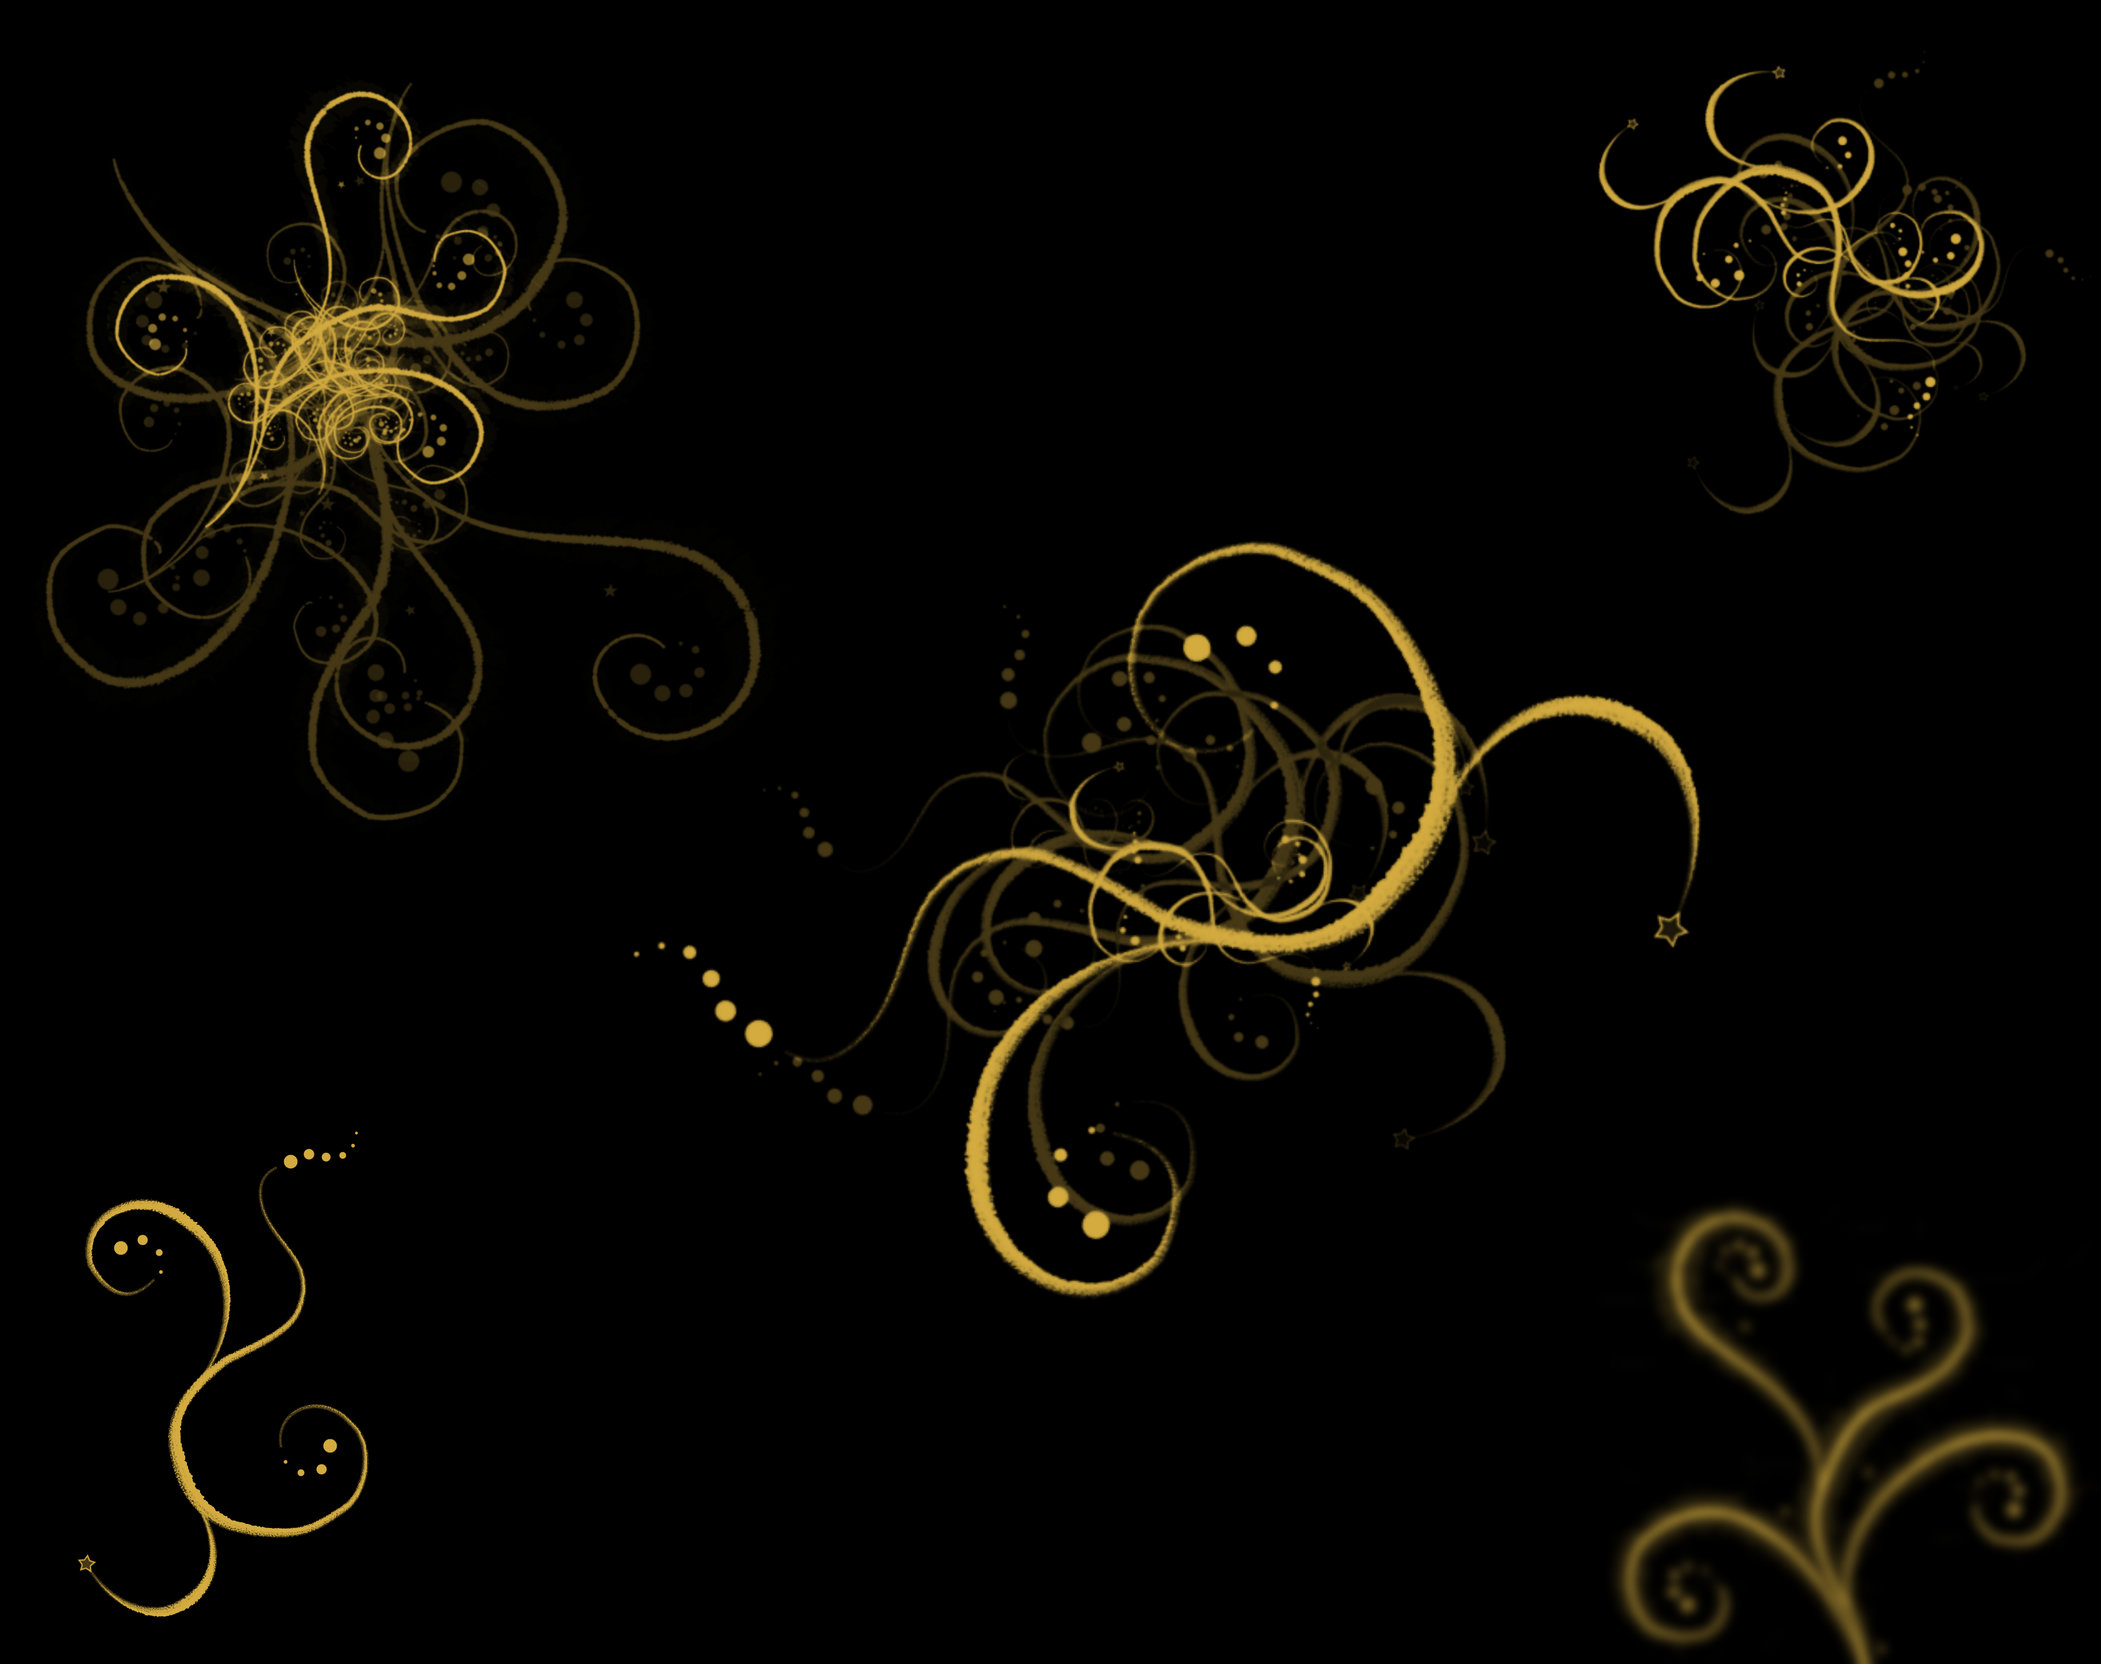 Abstract Iphone 5 Design Backgournd Mobile Black And Gold Wallpaper 2101x1664